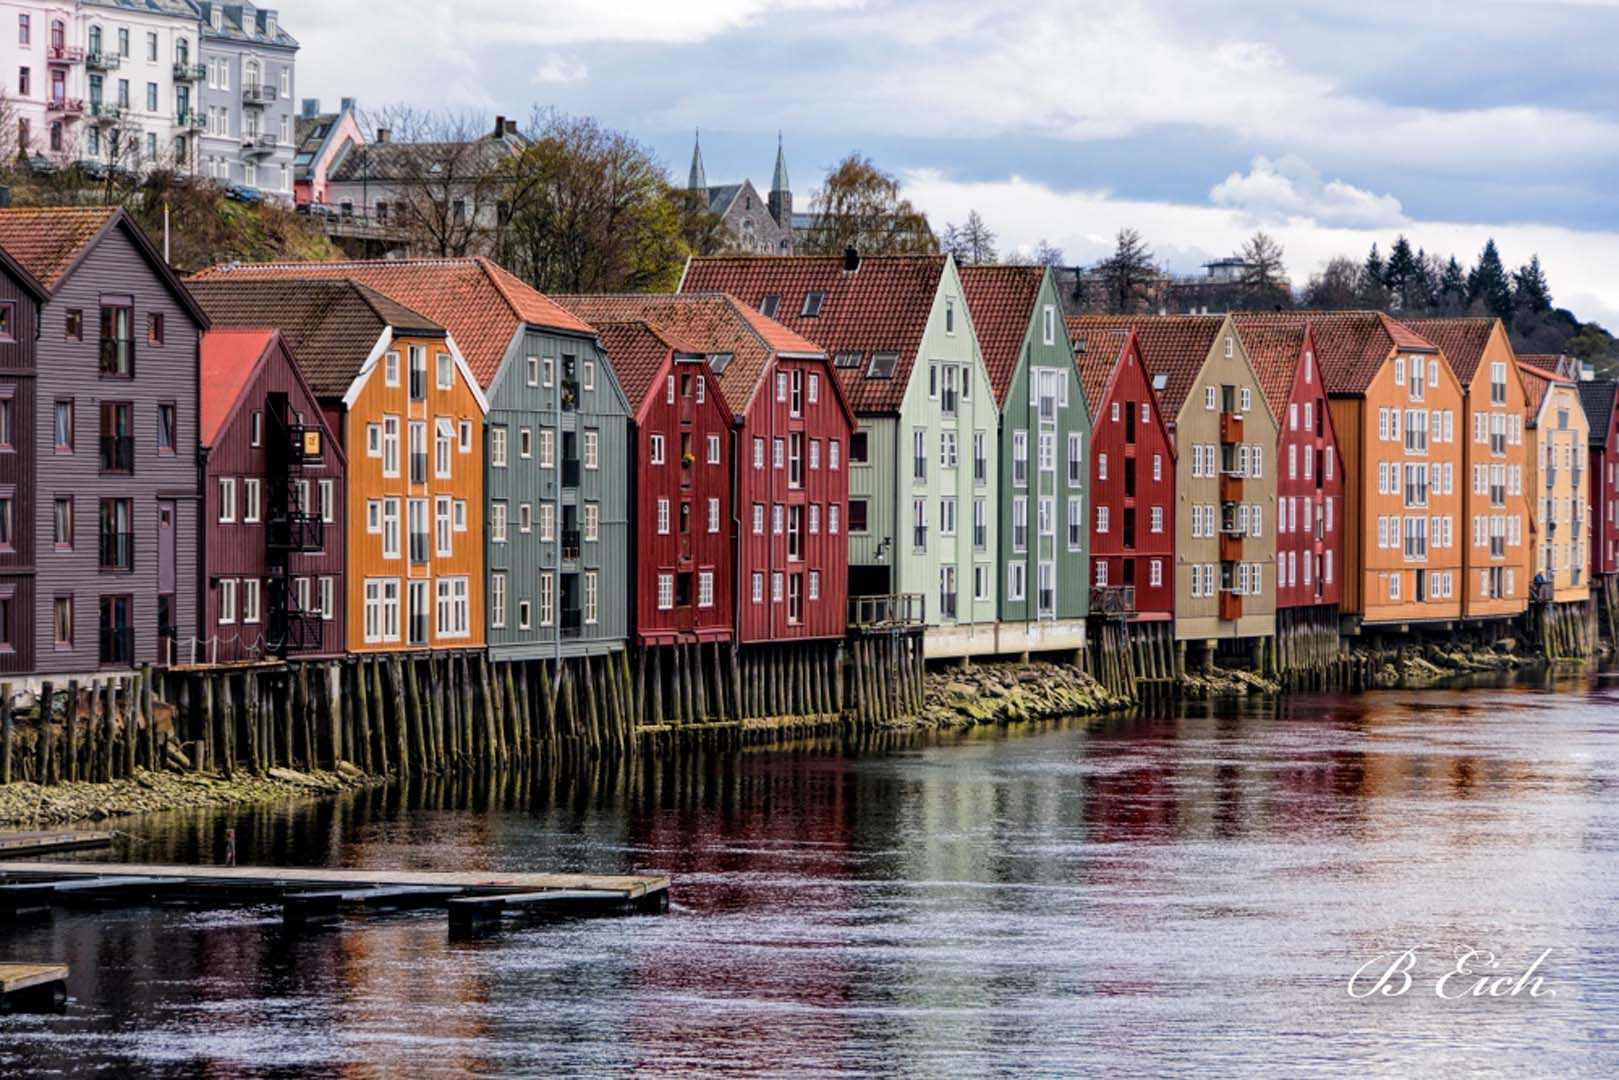 Trondheim old wharf, Norway ⒸBetty Eich 2016